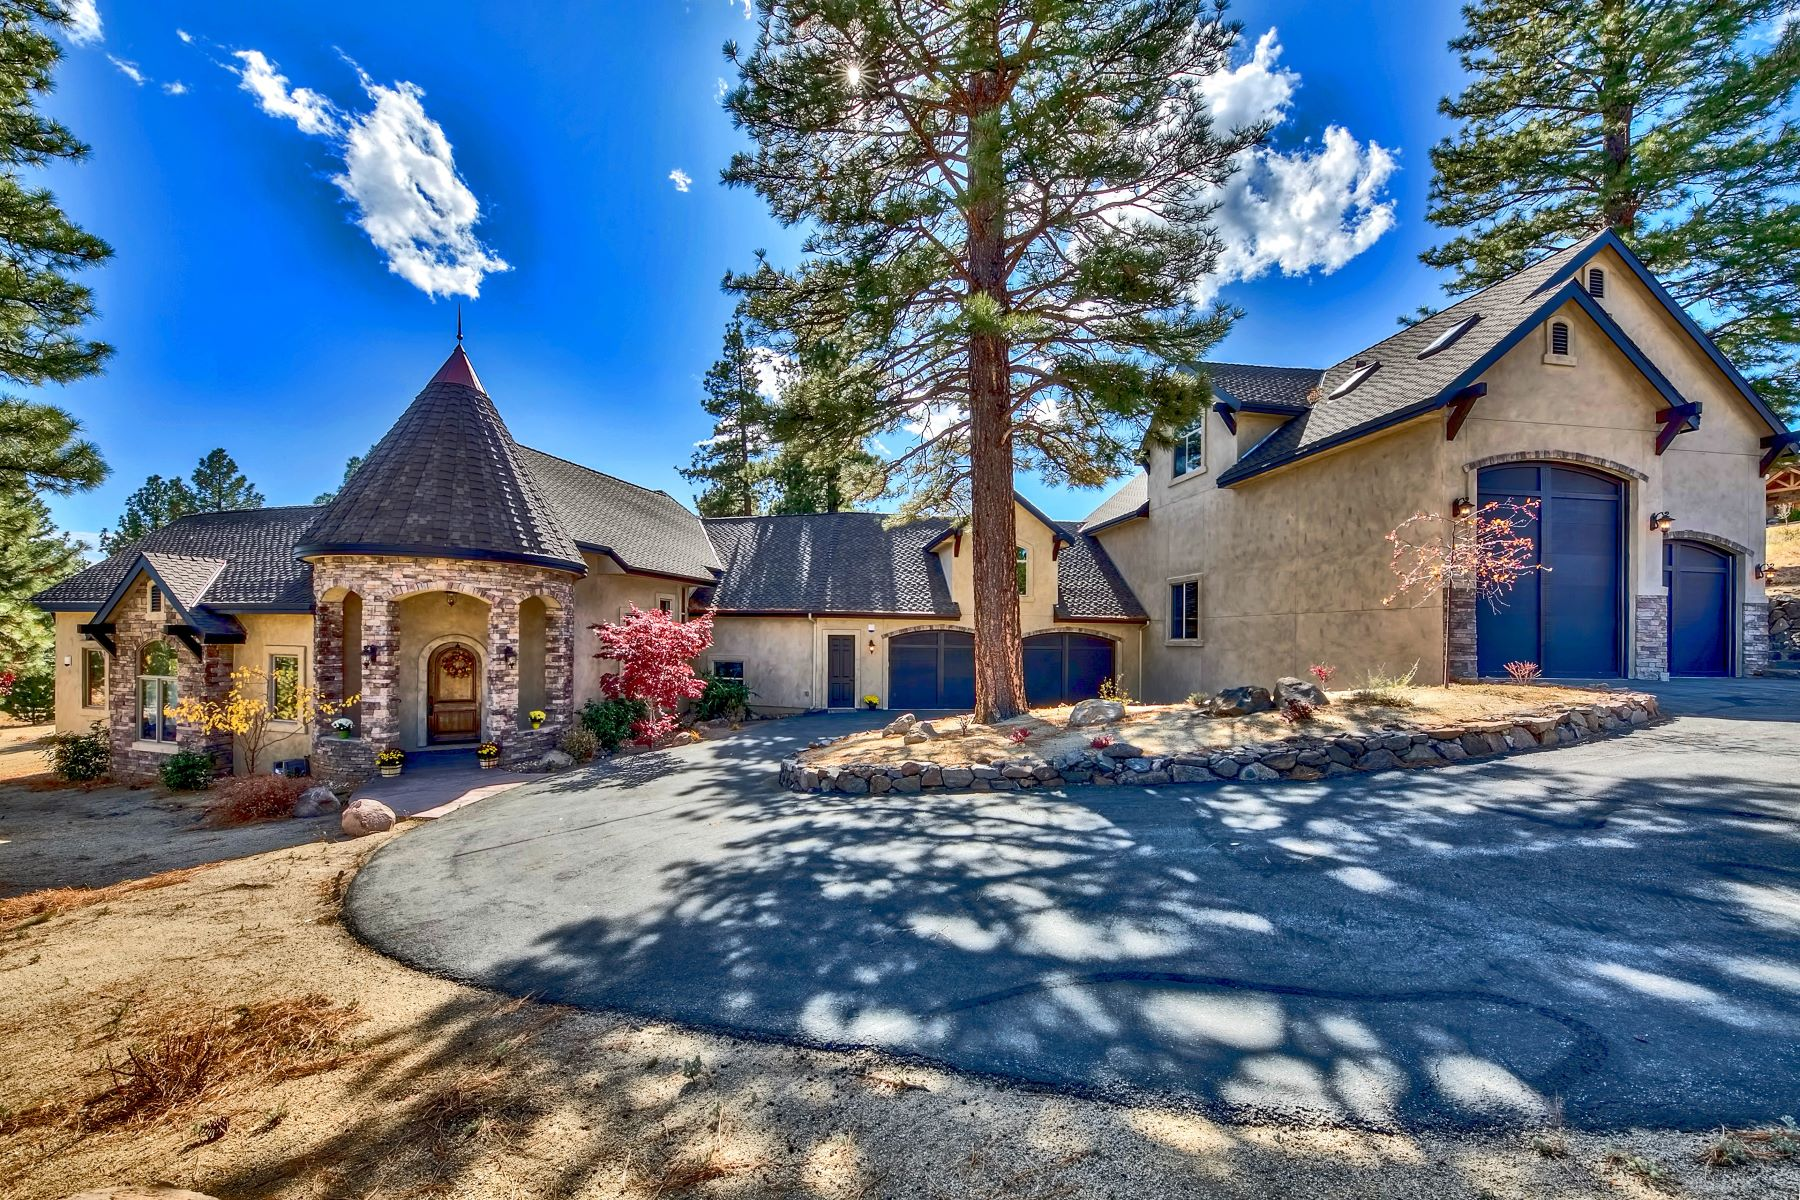 Property for Active at Beauty, Elegance, and Nature 395 Mount Mahogany Ct. Reno, Nevada 89511 United States